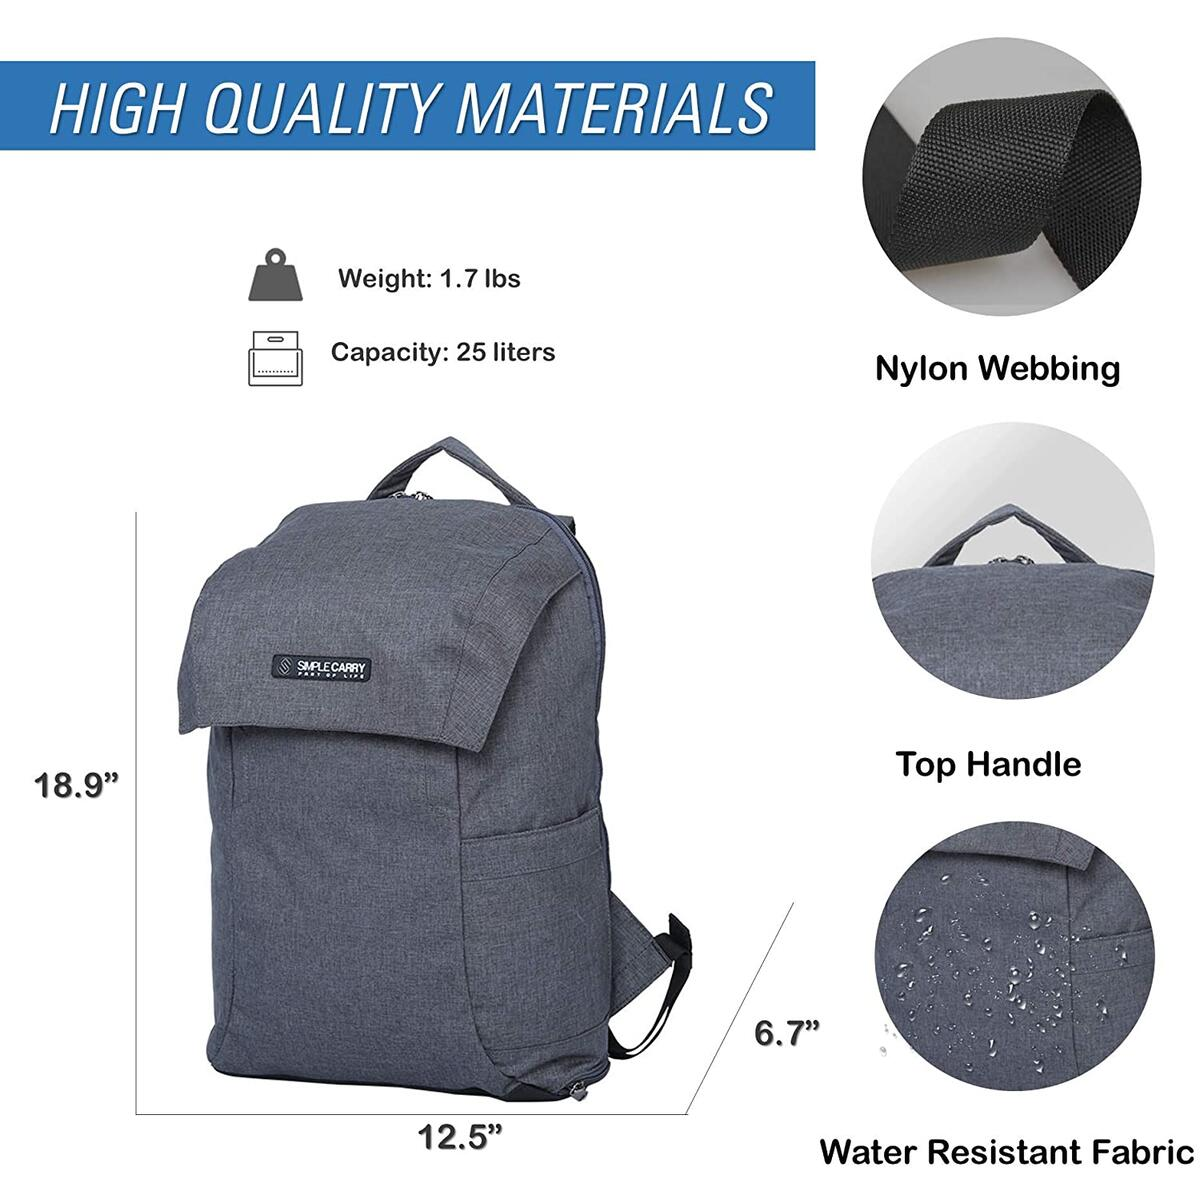 SIMPLECARRY Mattan2 Office College School Travel Hiking Backpack – Daypack for Camping, Running, Climbing– Water Resistant and Durable - Perfect for Men and Women (Grey)